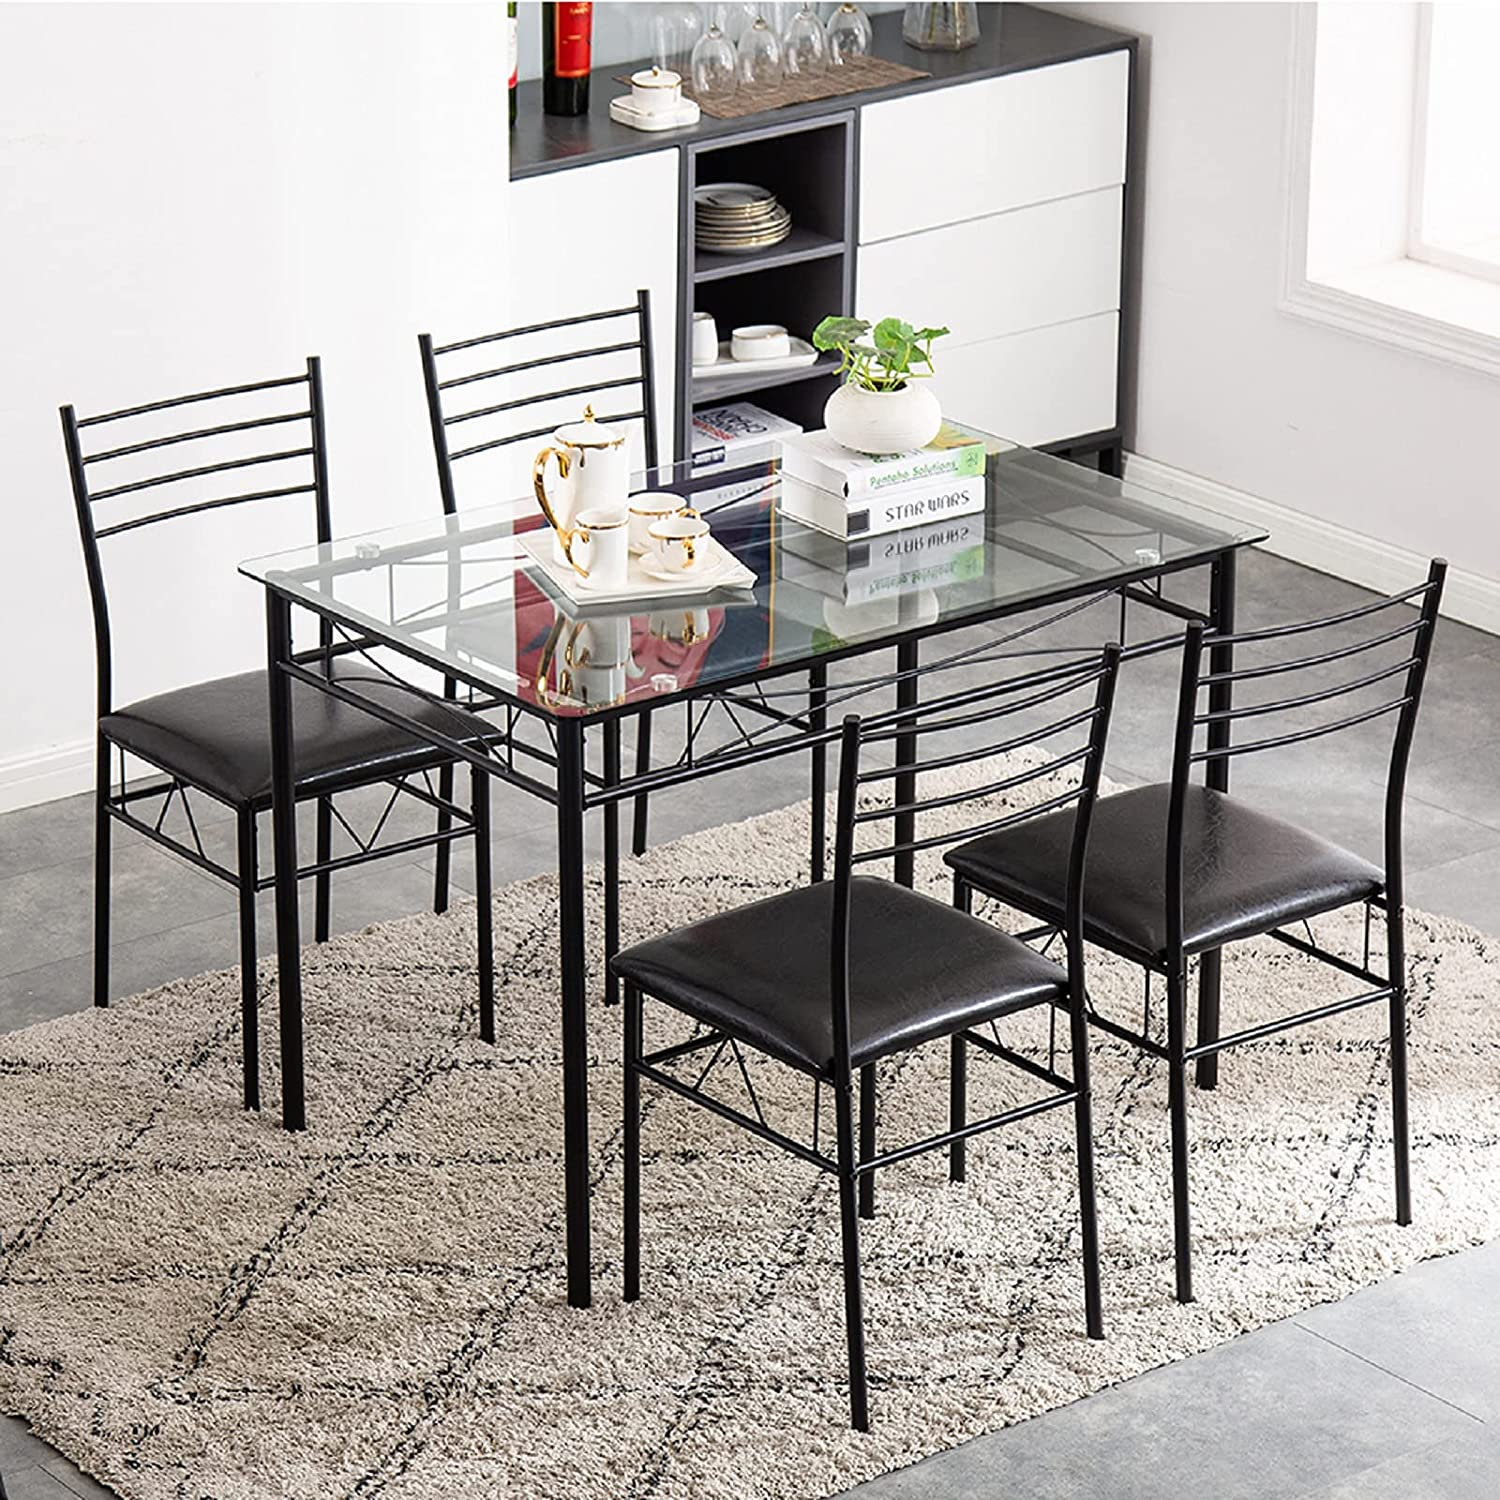 Buy Honadar 9 Piece Dining Room Table and Chair Set, Wrought Iron ...